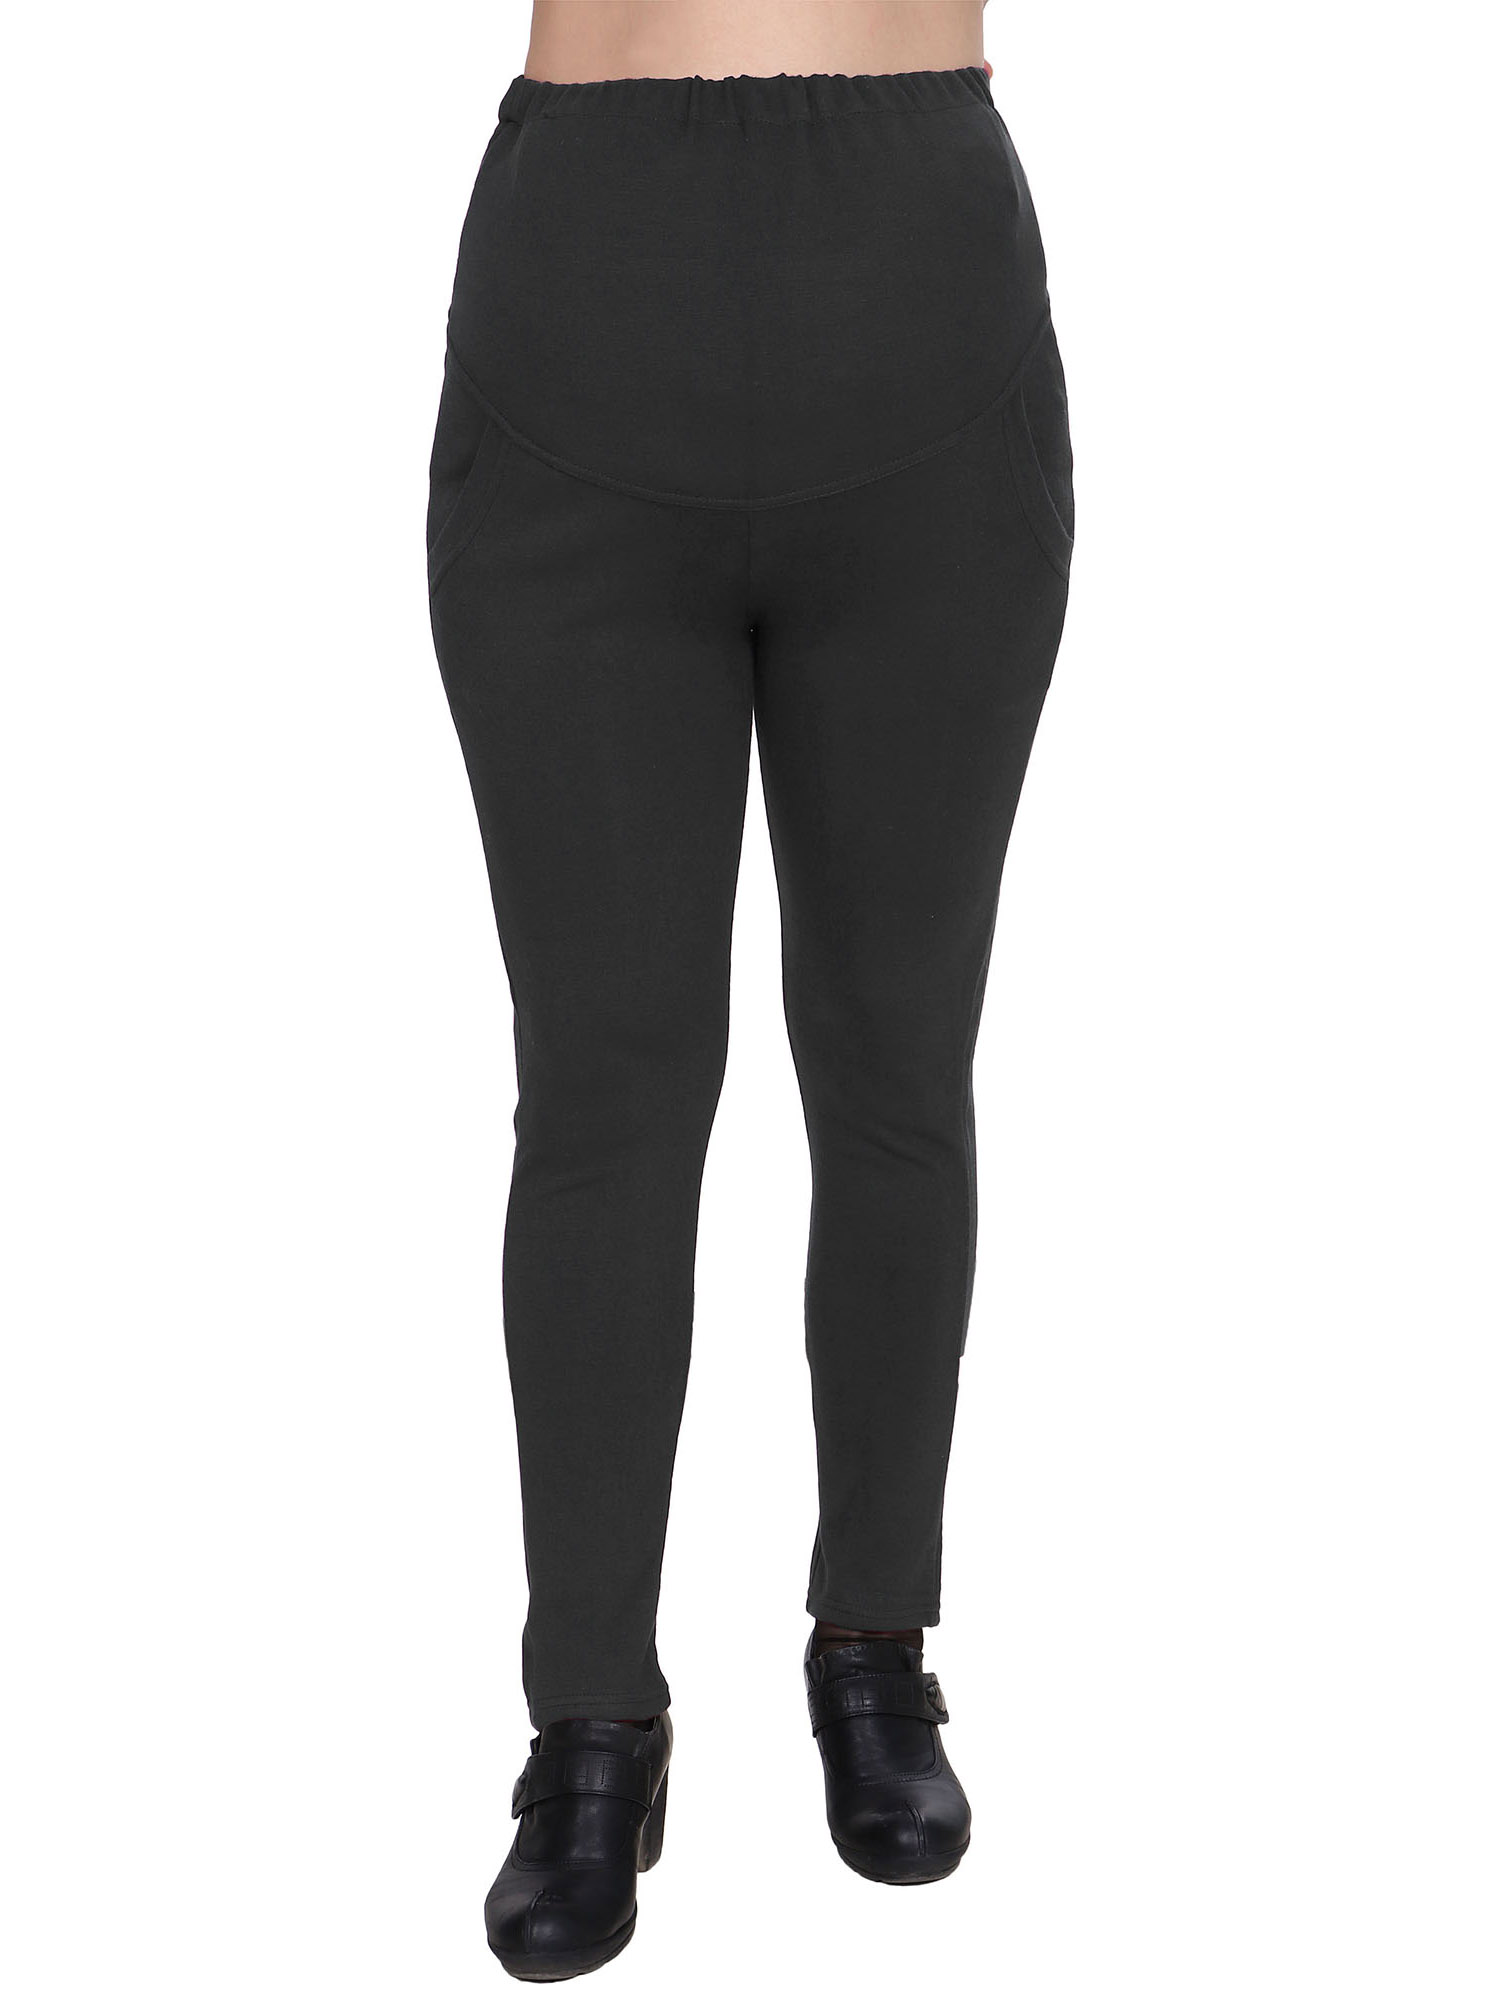 Harcadian High Waist Adjustable Stretchy Maternity Legging Pants,Grey